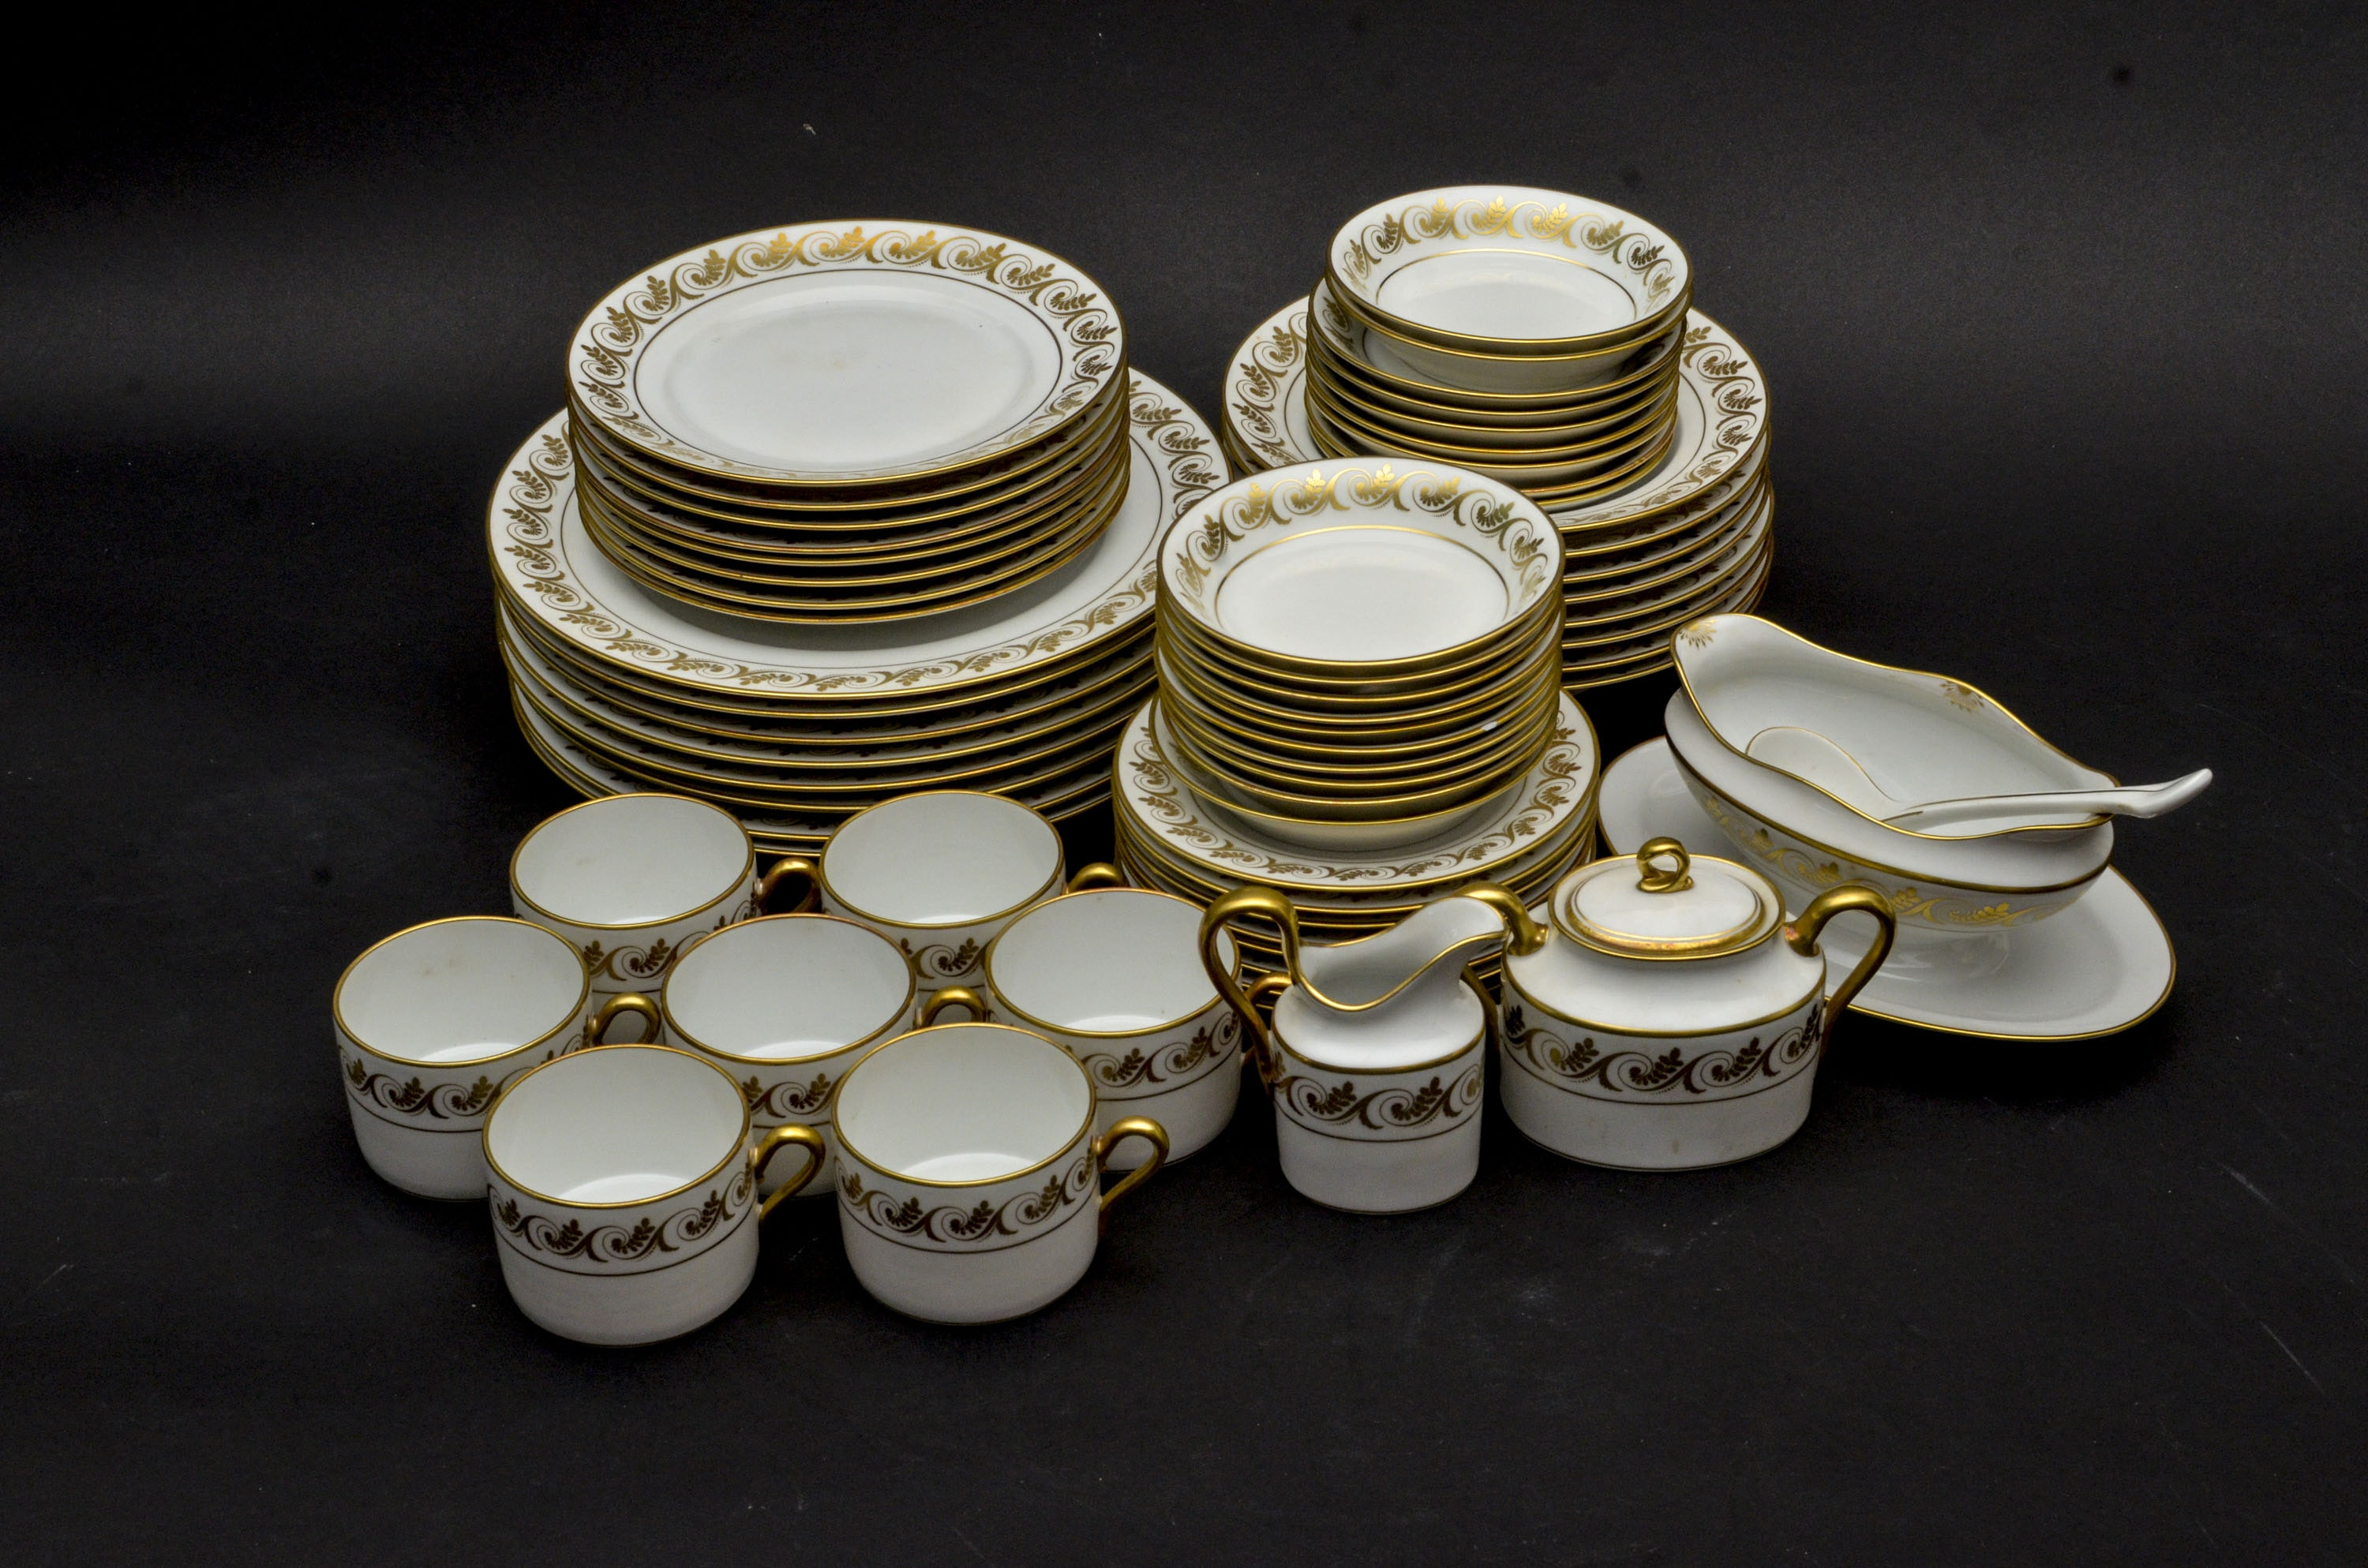 Richard Ginori Italian Dinner Set ... & Richard Ginori Italian Dinner Set : EBTH